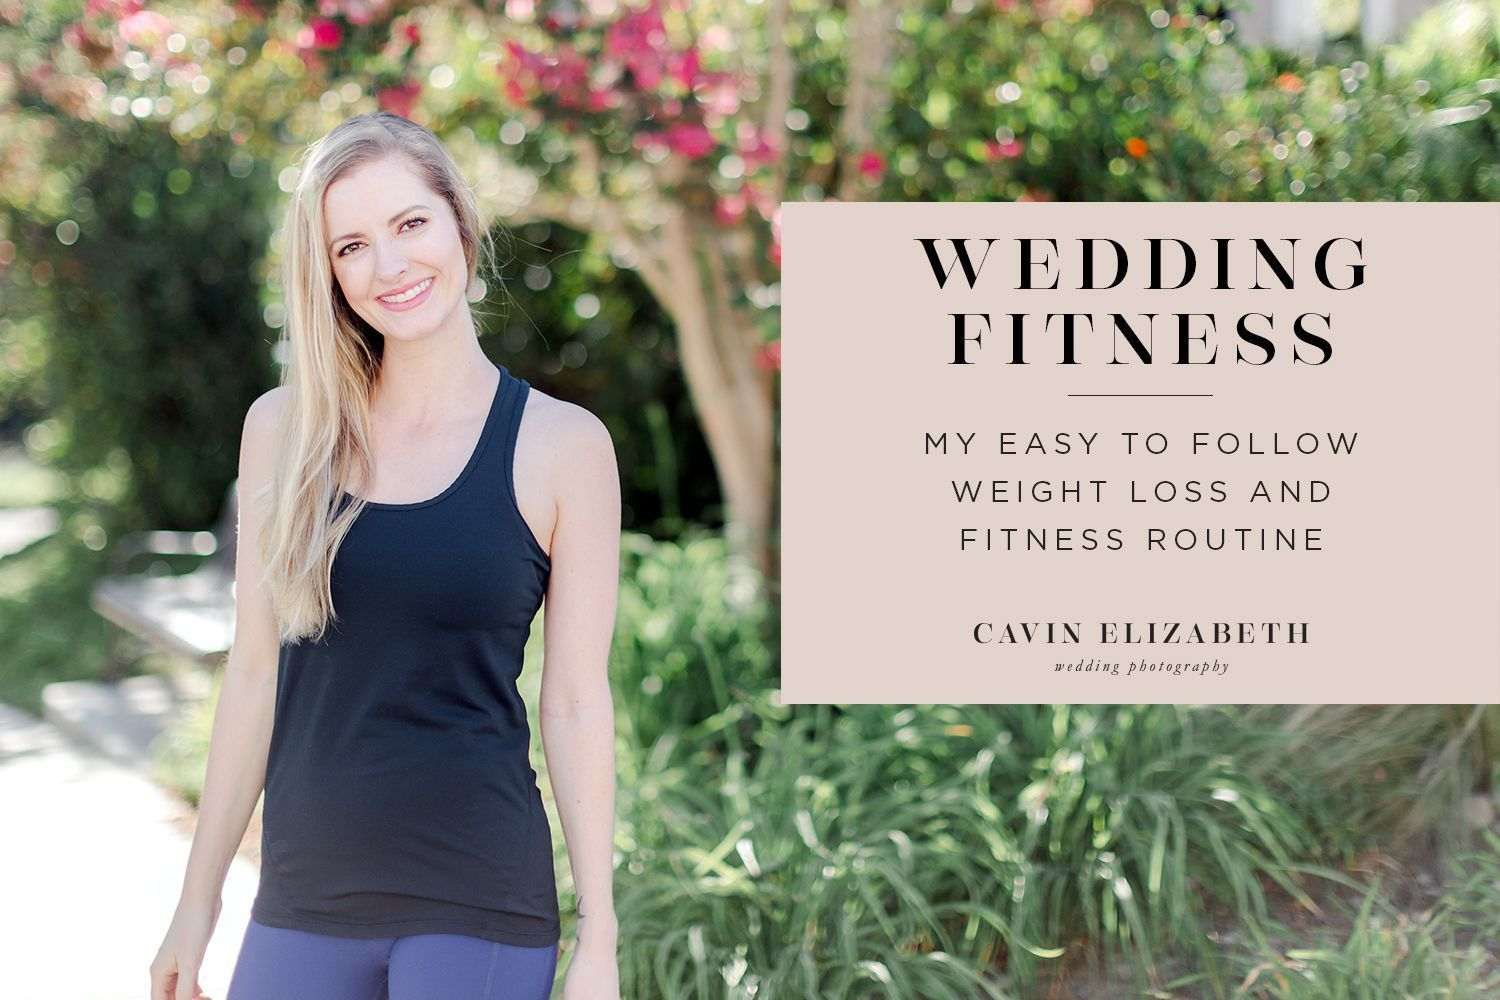 #weddingmy #wedding #routine #fitness #amazing #inside #thats #learn #shape #outmy #your #diet #that...